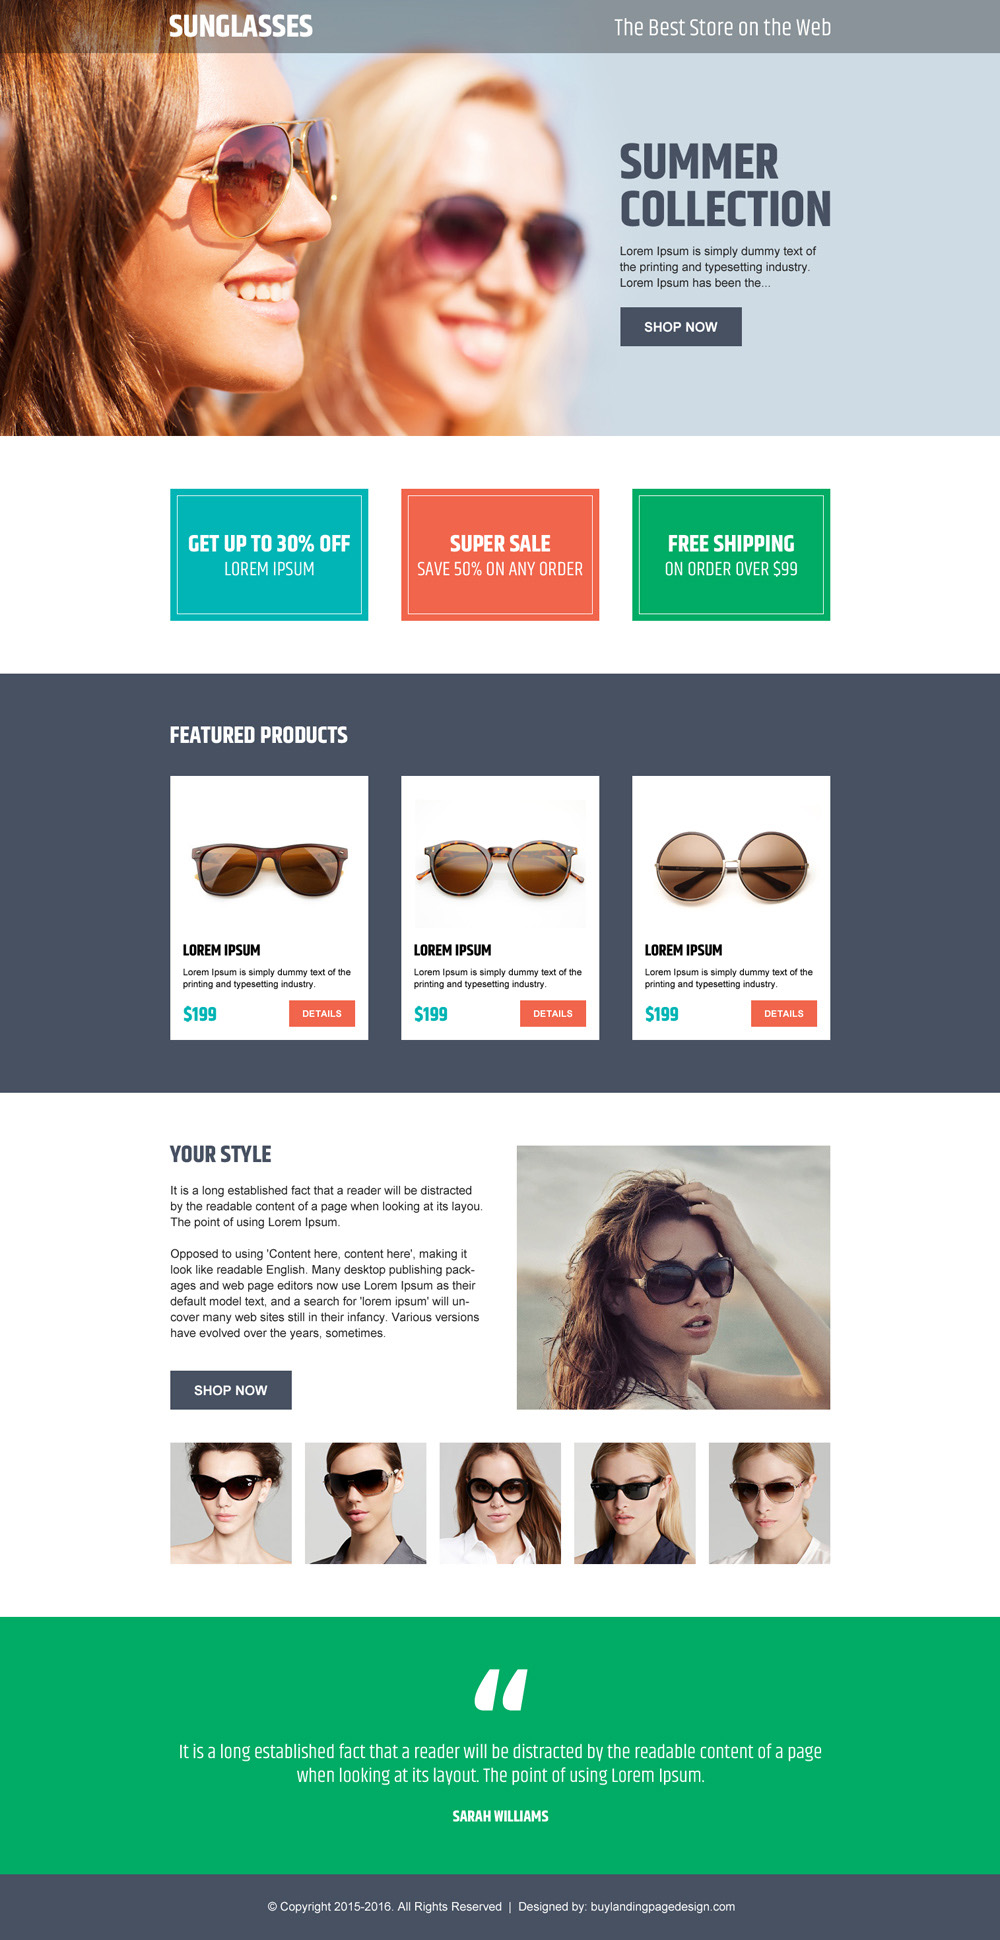 online-store-for-sunglasses-call-to-action-landing-page-design-001